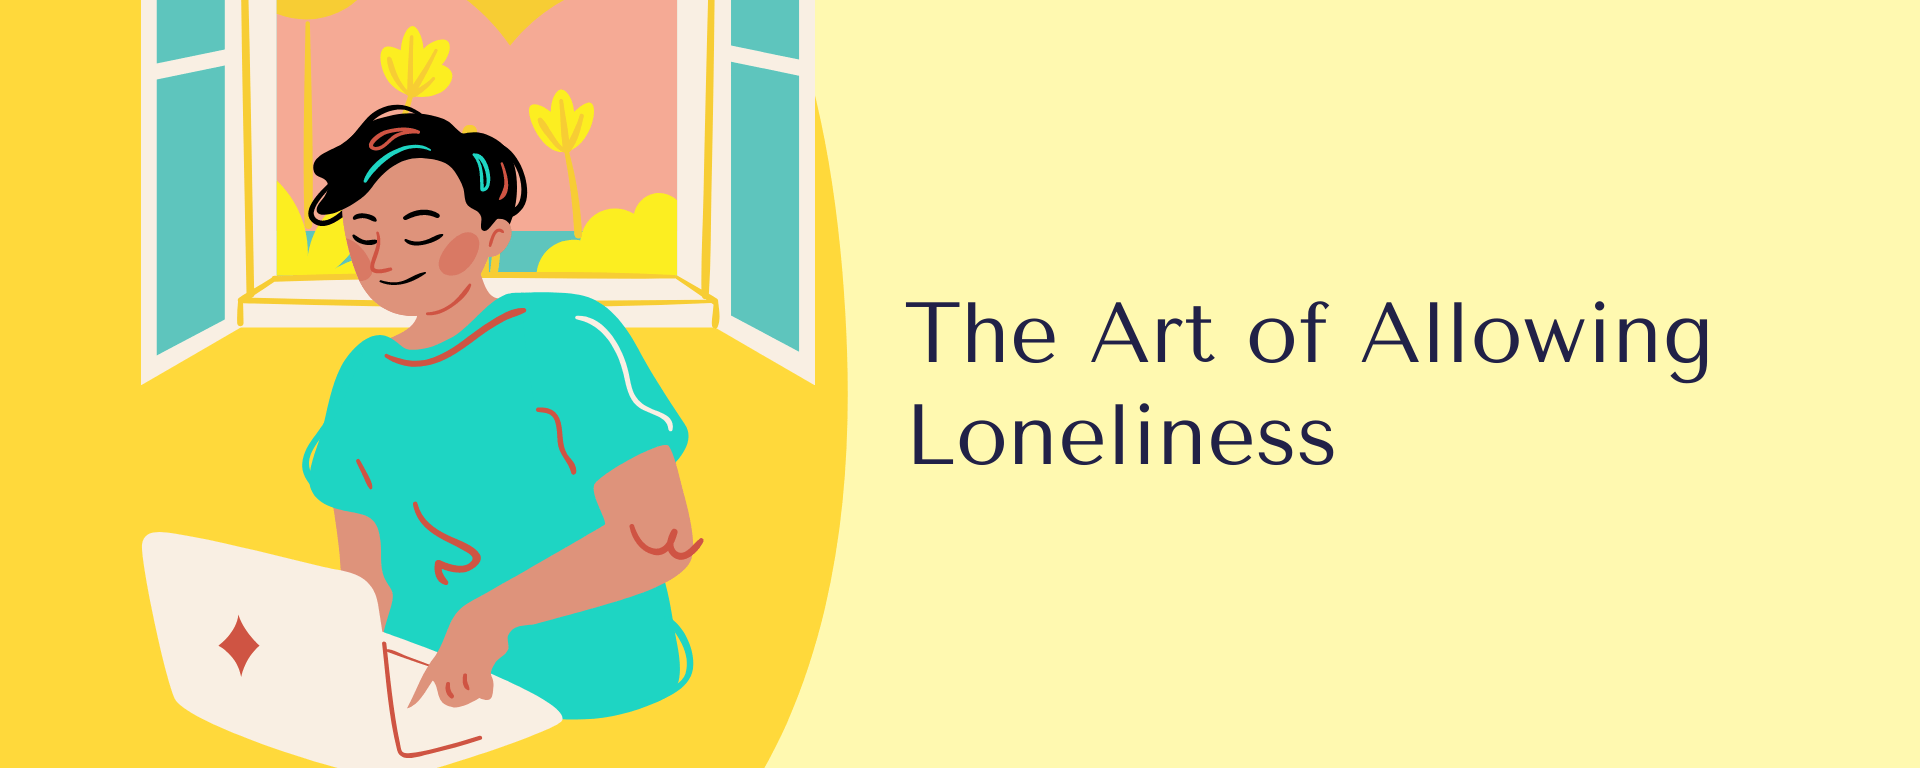 """Person sitting by themselves by a window while on laptop in front of a yellow background with the text, """"The Art of Allowing Loneliness"""""""